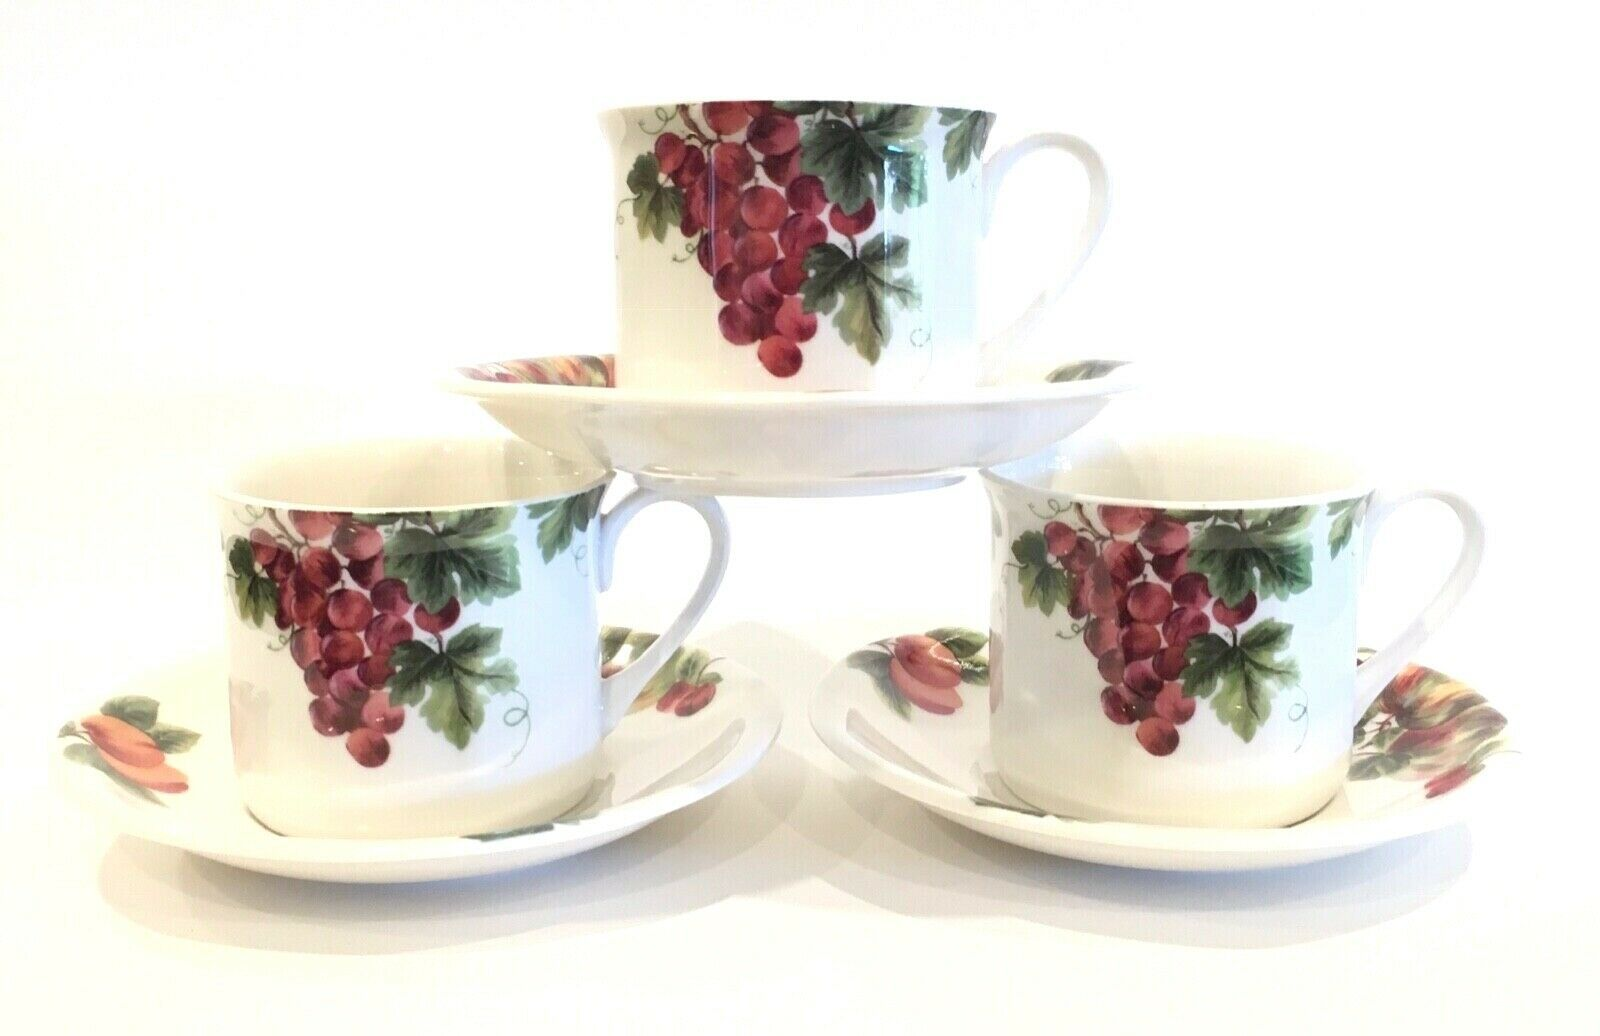 Royal Doulton Everyday VINTAGE GRAPE Flat Coffee Cups & Saucers Set of 3 1994 - $26.99